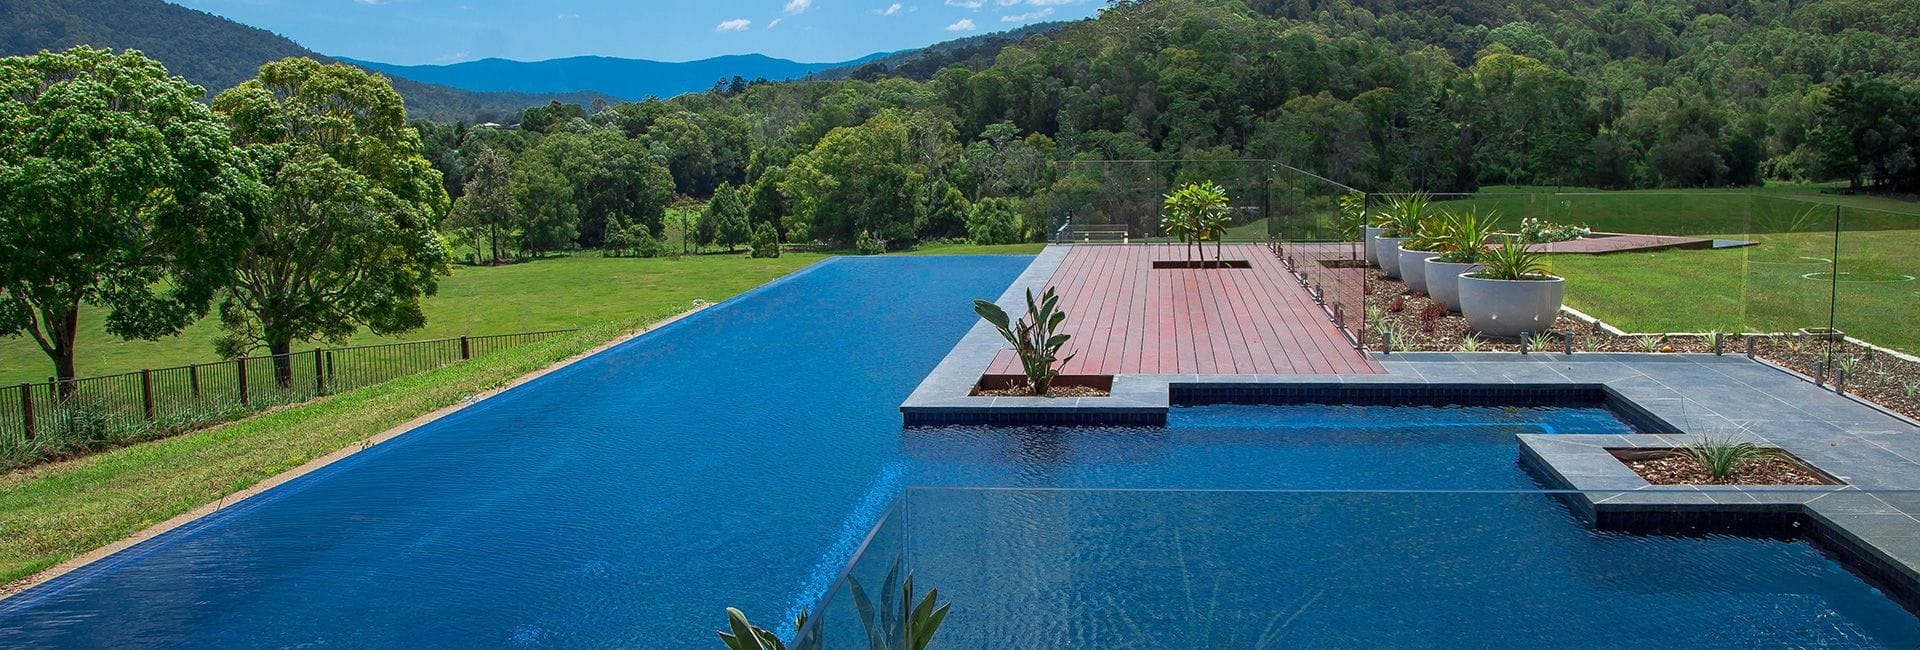 Swimming pool builders award winning concrete pools for Pool design website